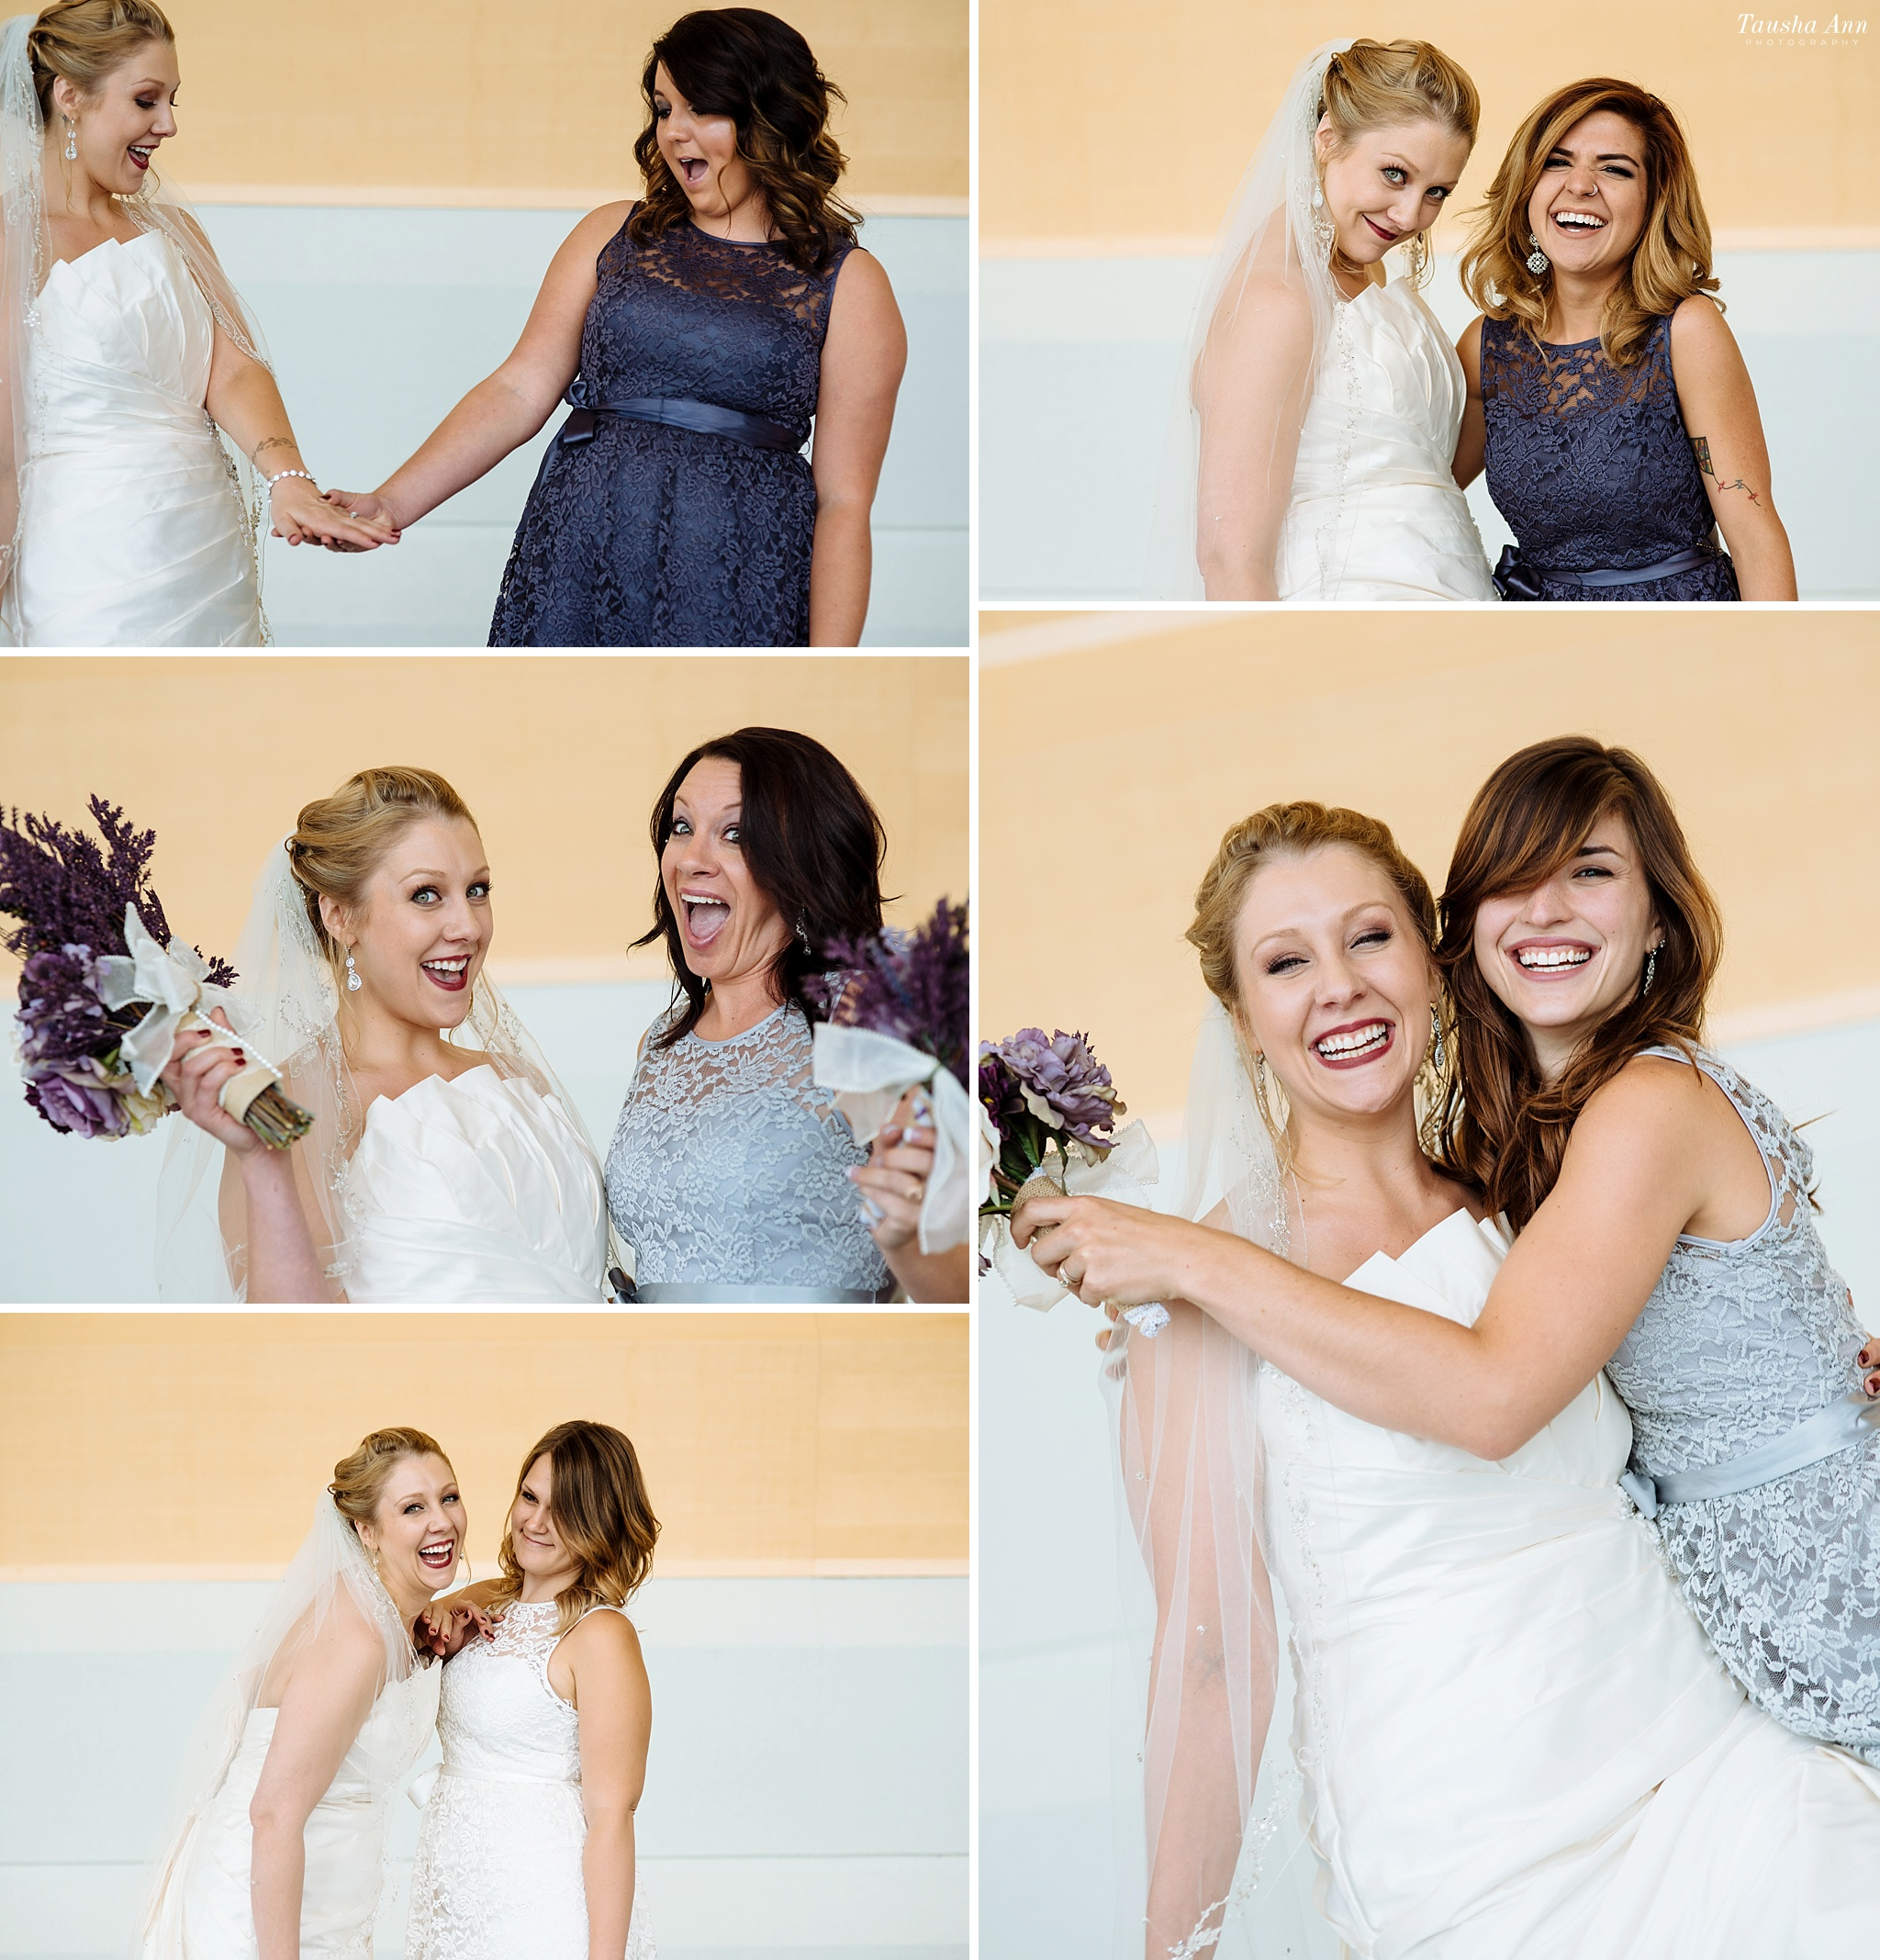 Portraits of all of the Bridesmaids each individually with bride. Goofing off and having fun.